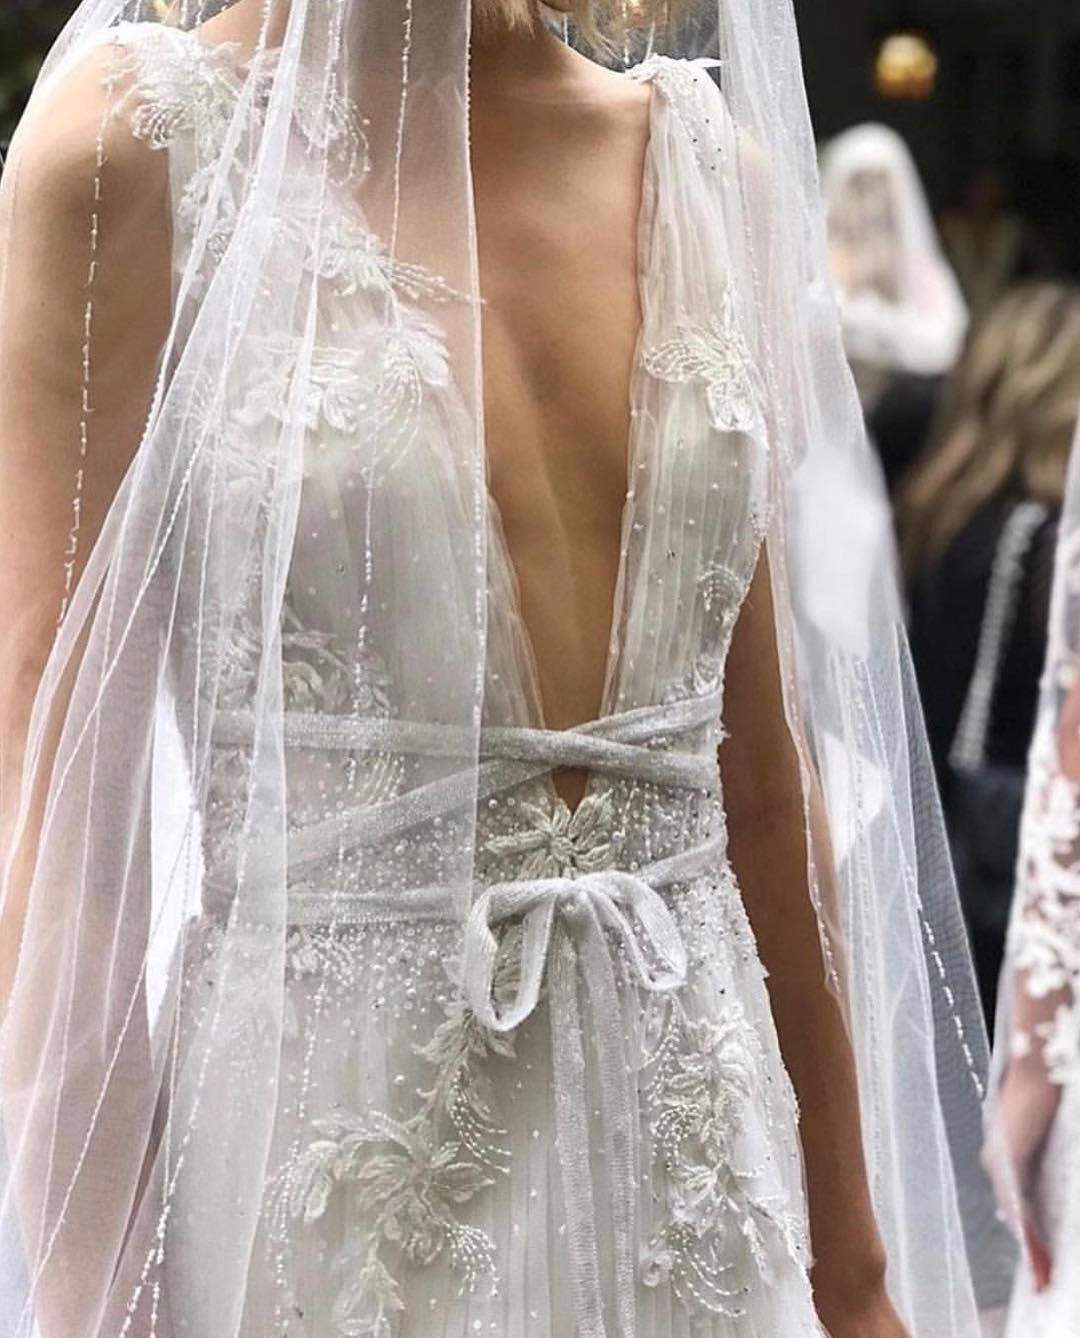 Pin By Nicole Lee On Romancing Dresses In 2019